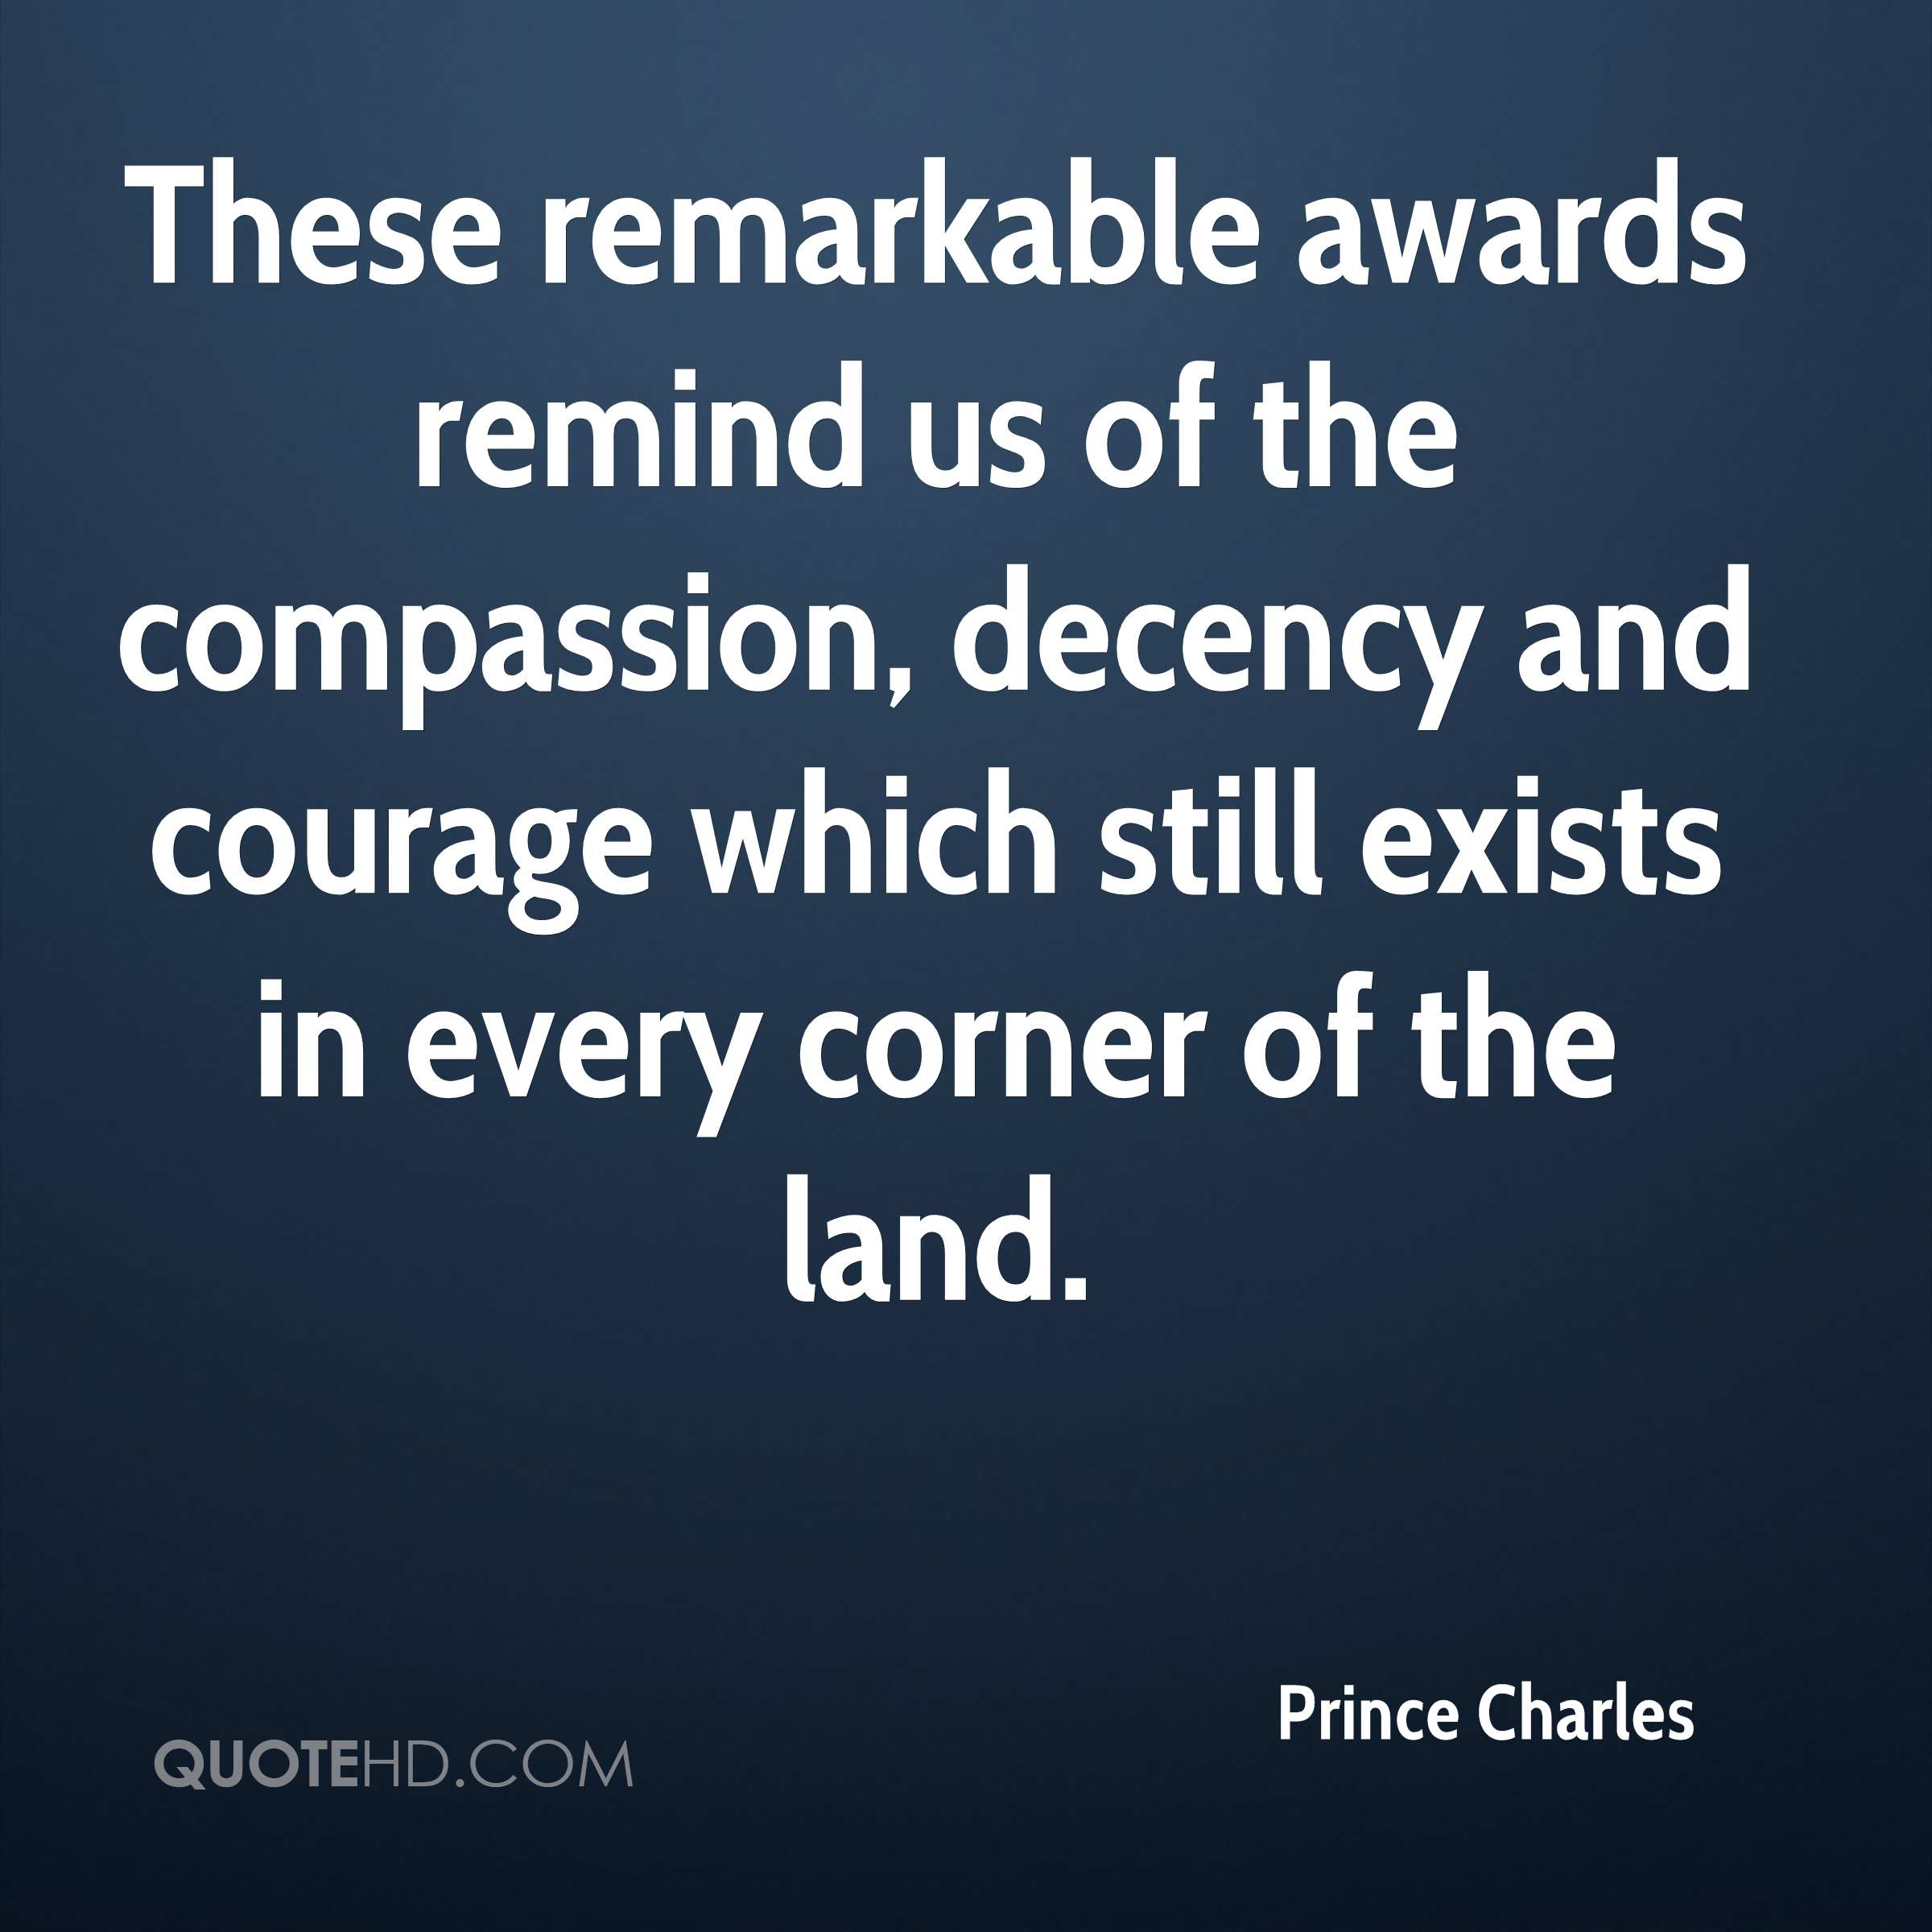 These remarkable awards remind us of the compassion, decency and courage which still exists in every corner of the land.